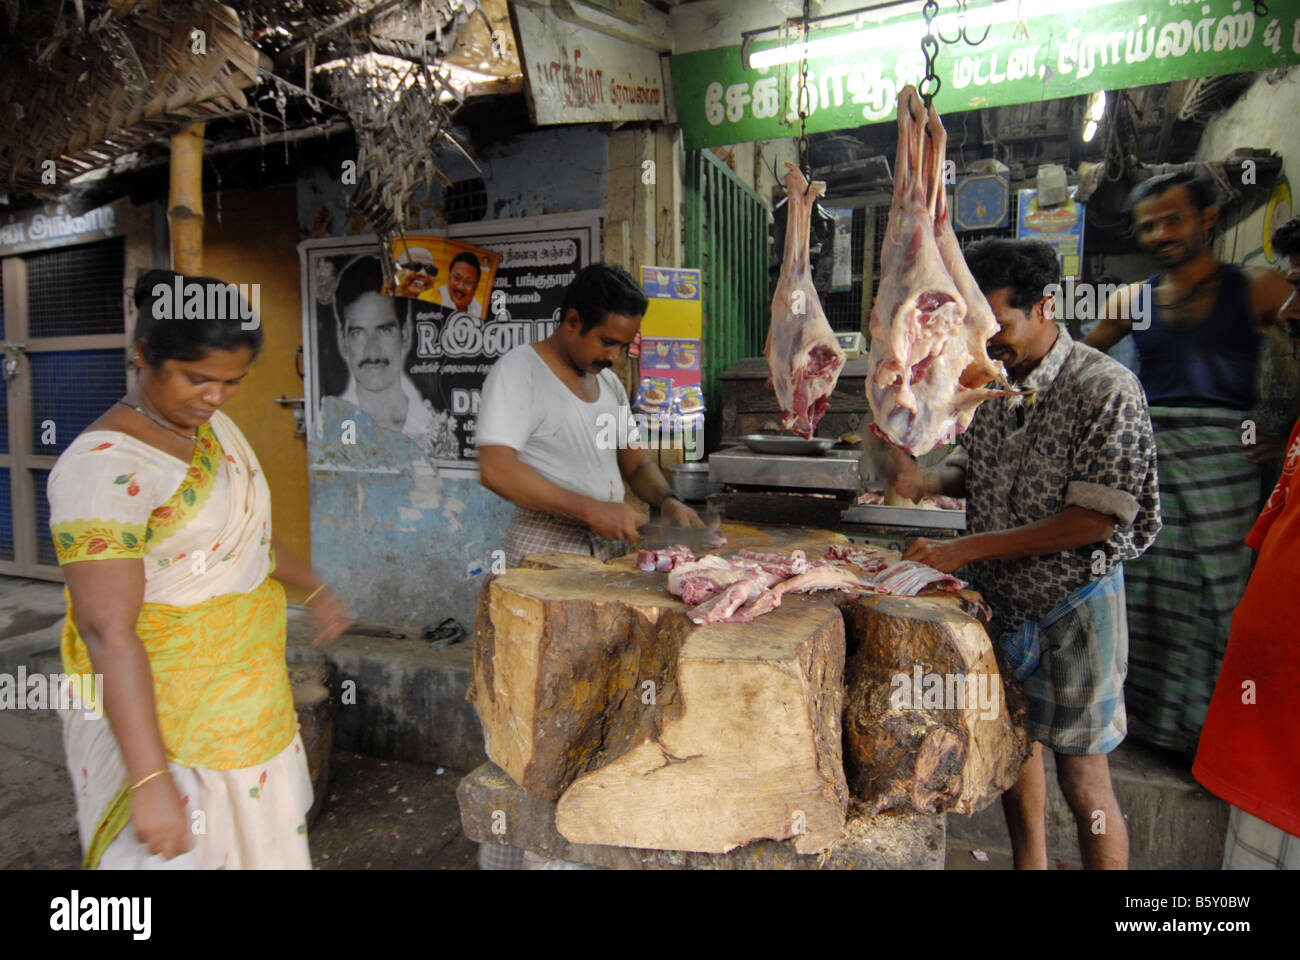 meat market stock images - photo #27